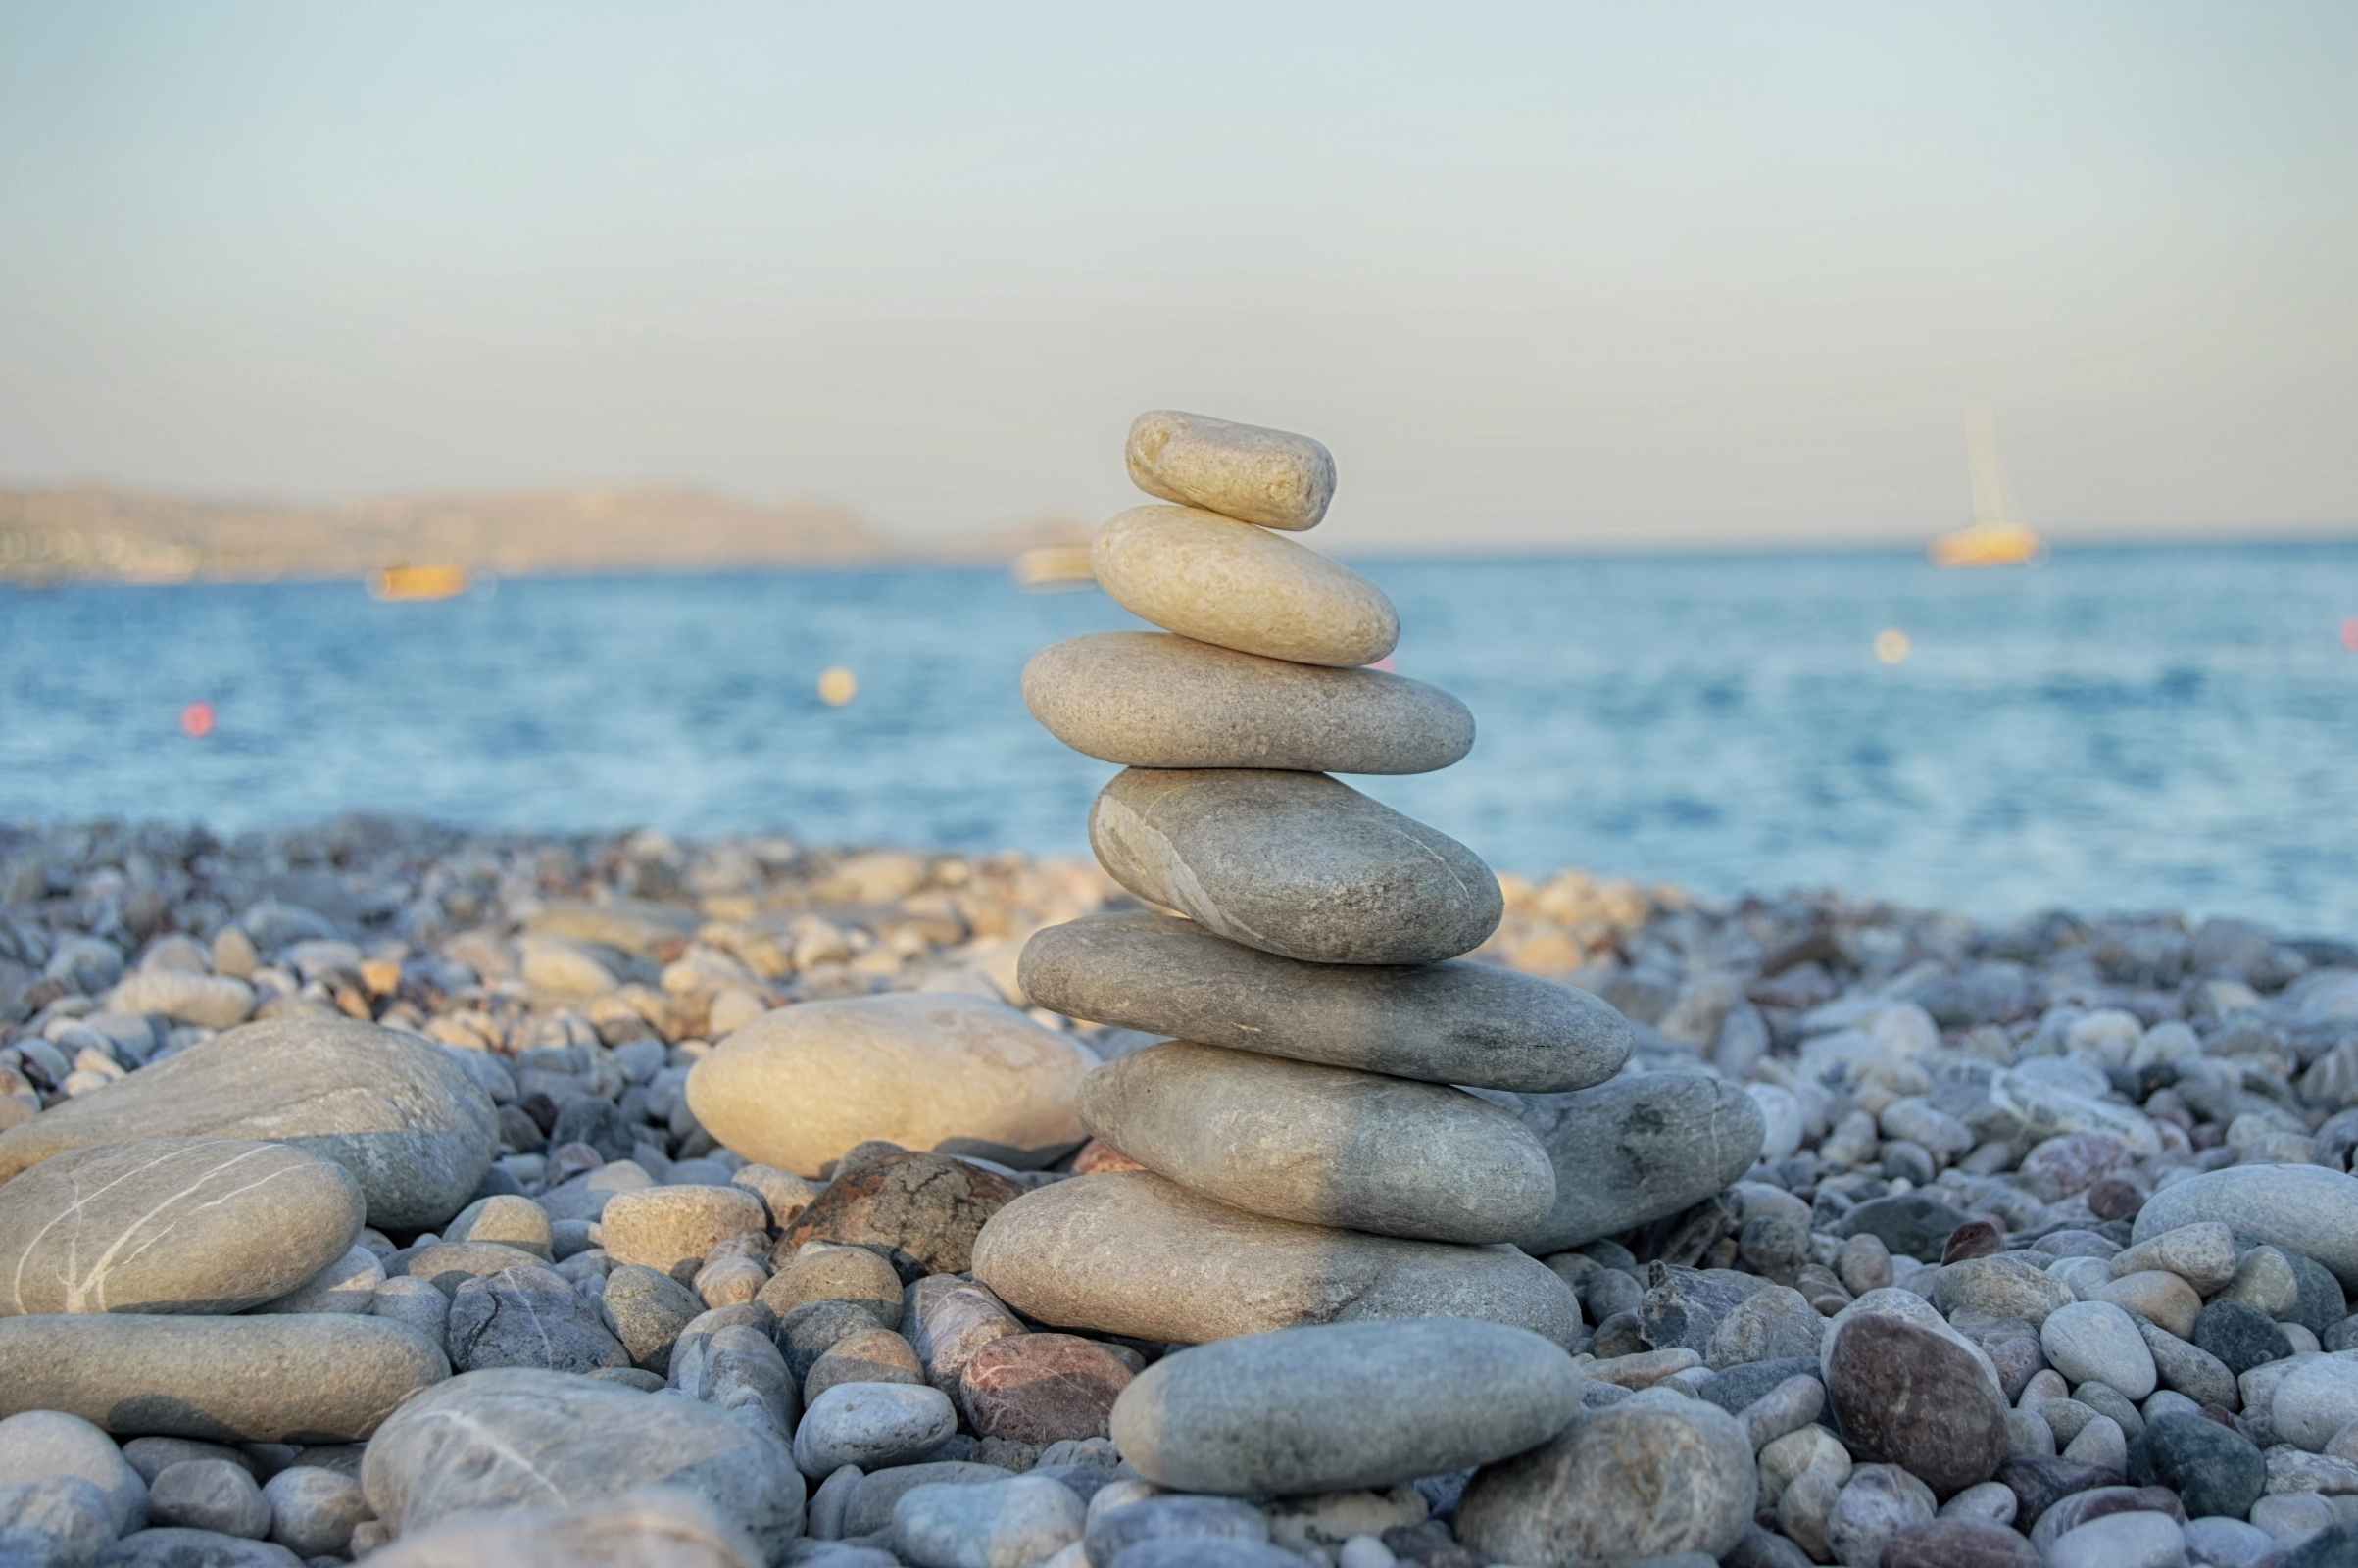 Zen-like pyramid of stone on the beach photo